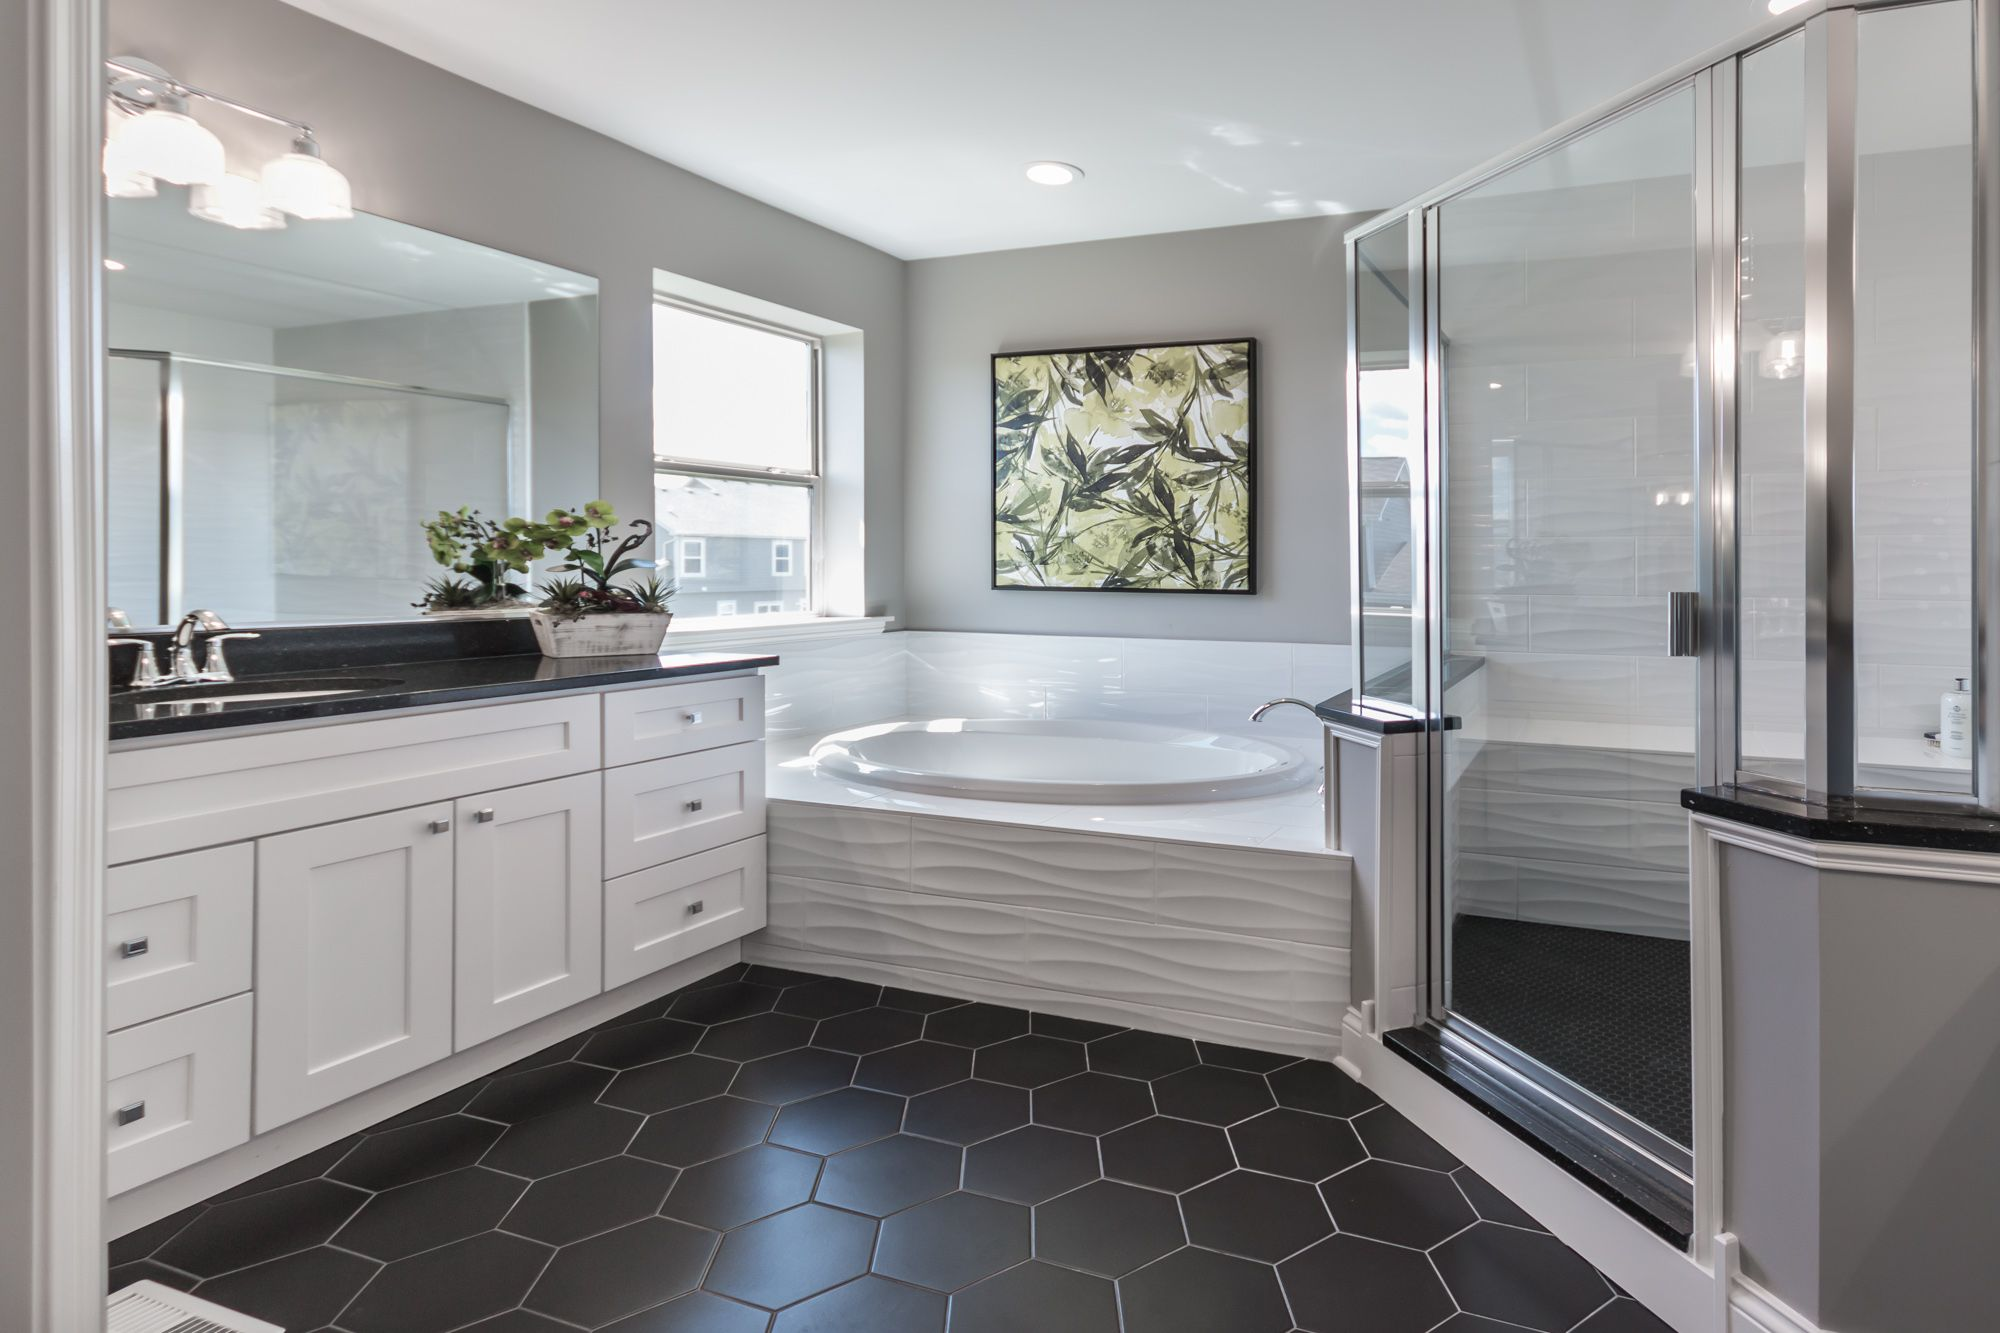 Top 11 Bathroom Designs  Bathroom design, Design, Bathrooms remodel